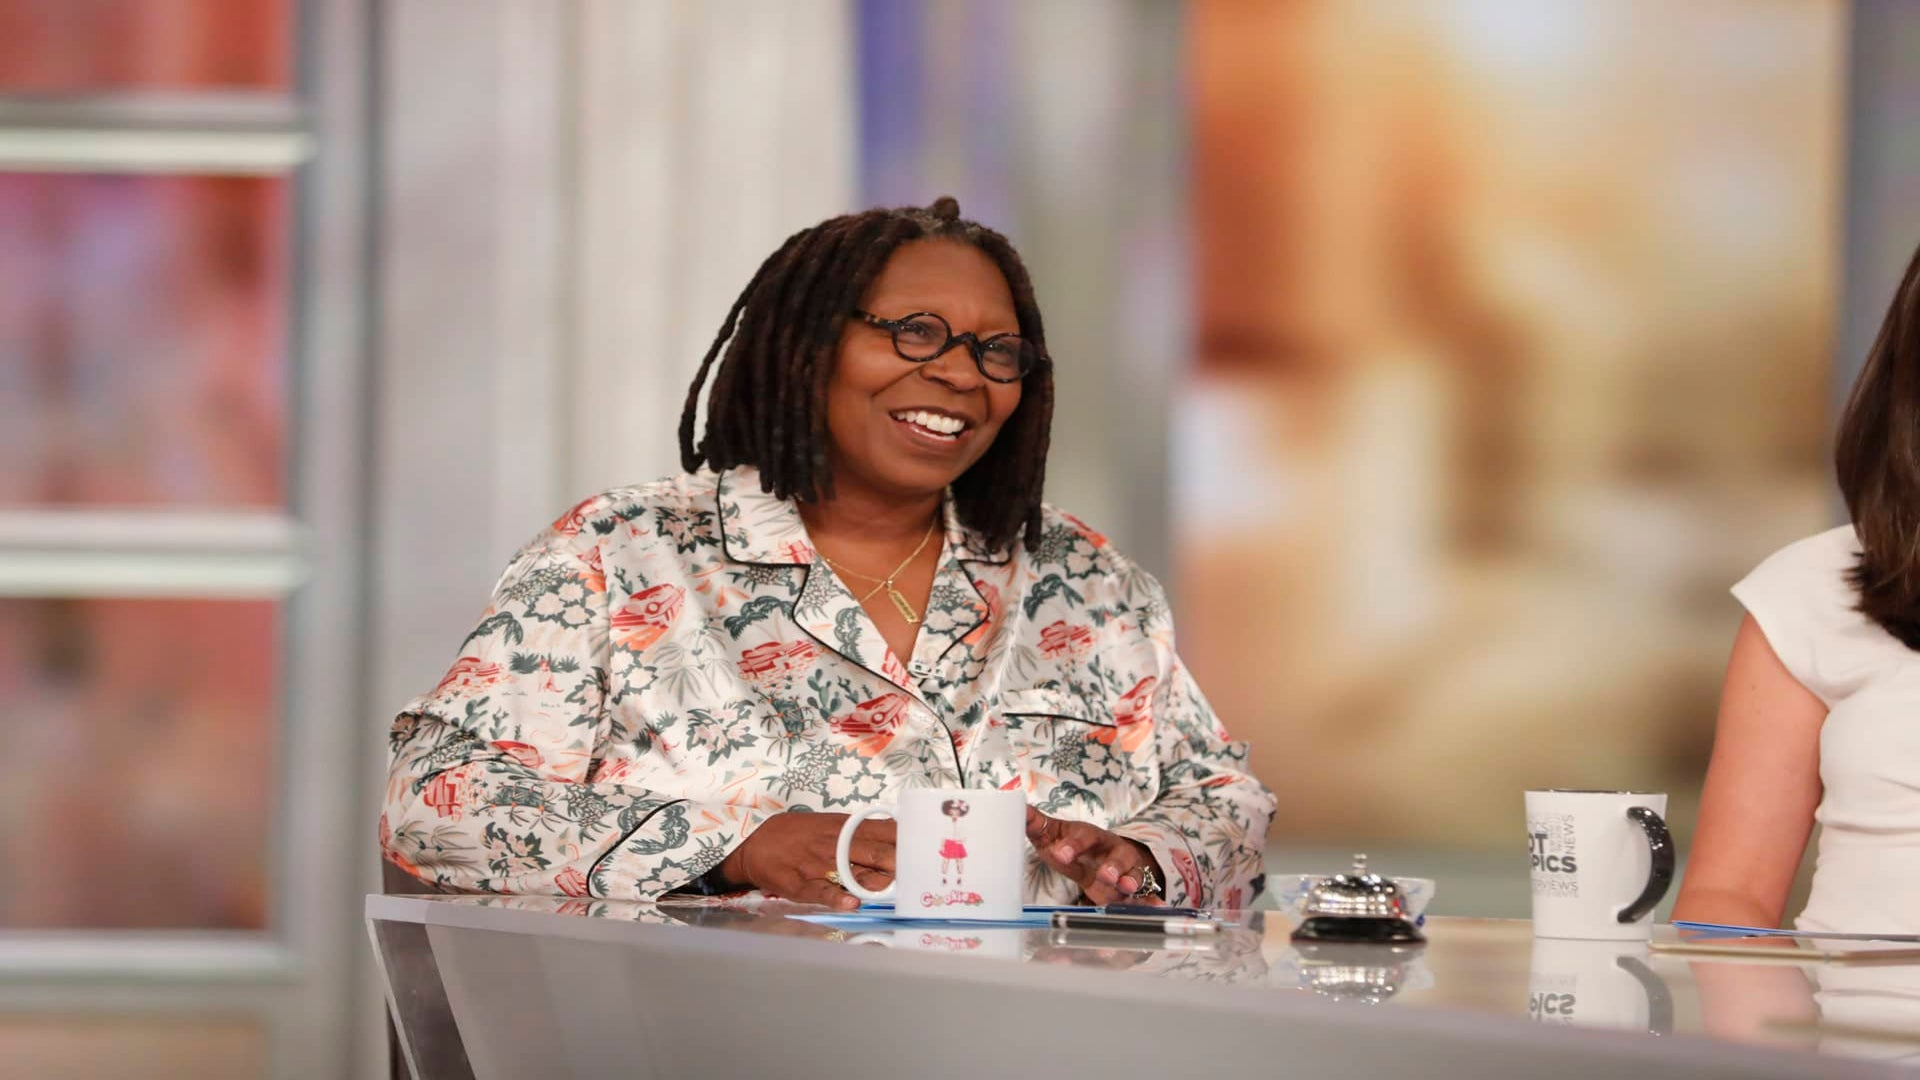 Whoopi Goldberg Still Out With Pneumonia After Missing 'The View' For Almost A Month